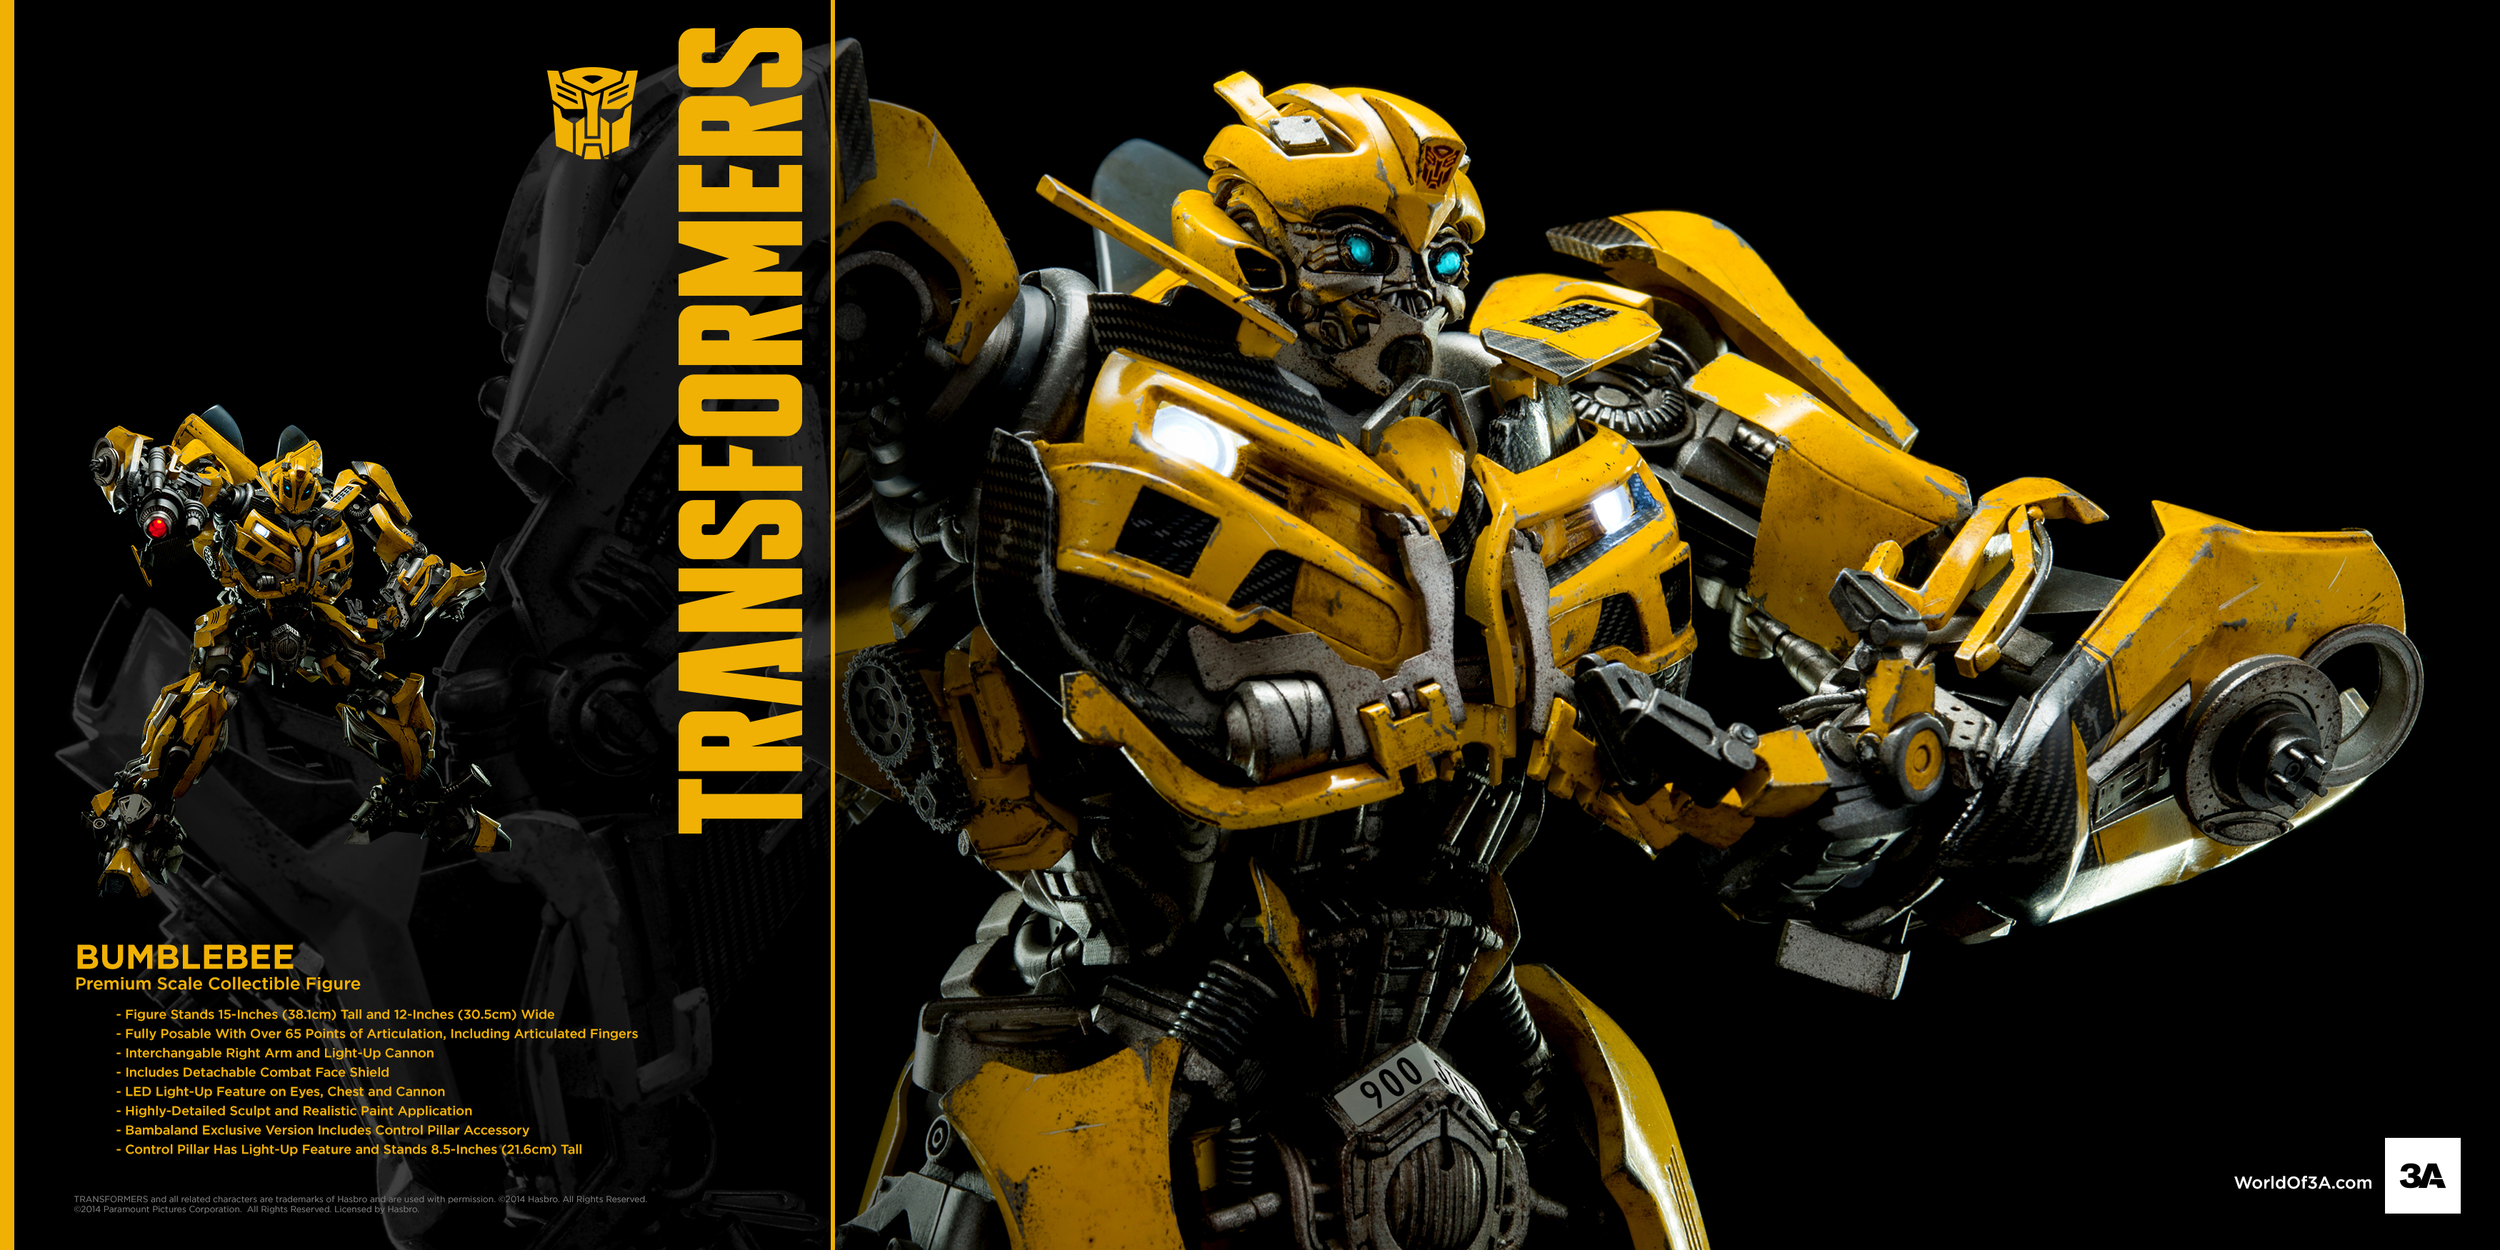 World Of 3a Movie Bumblebee